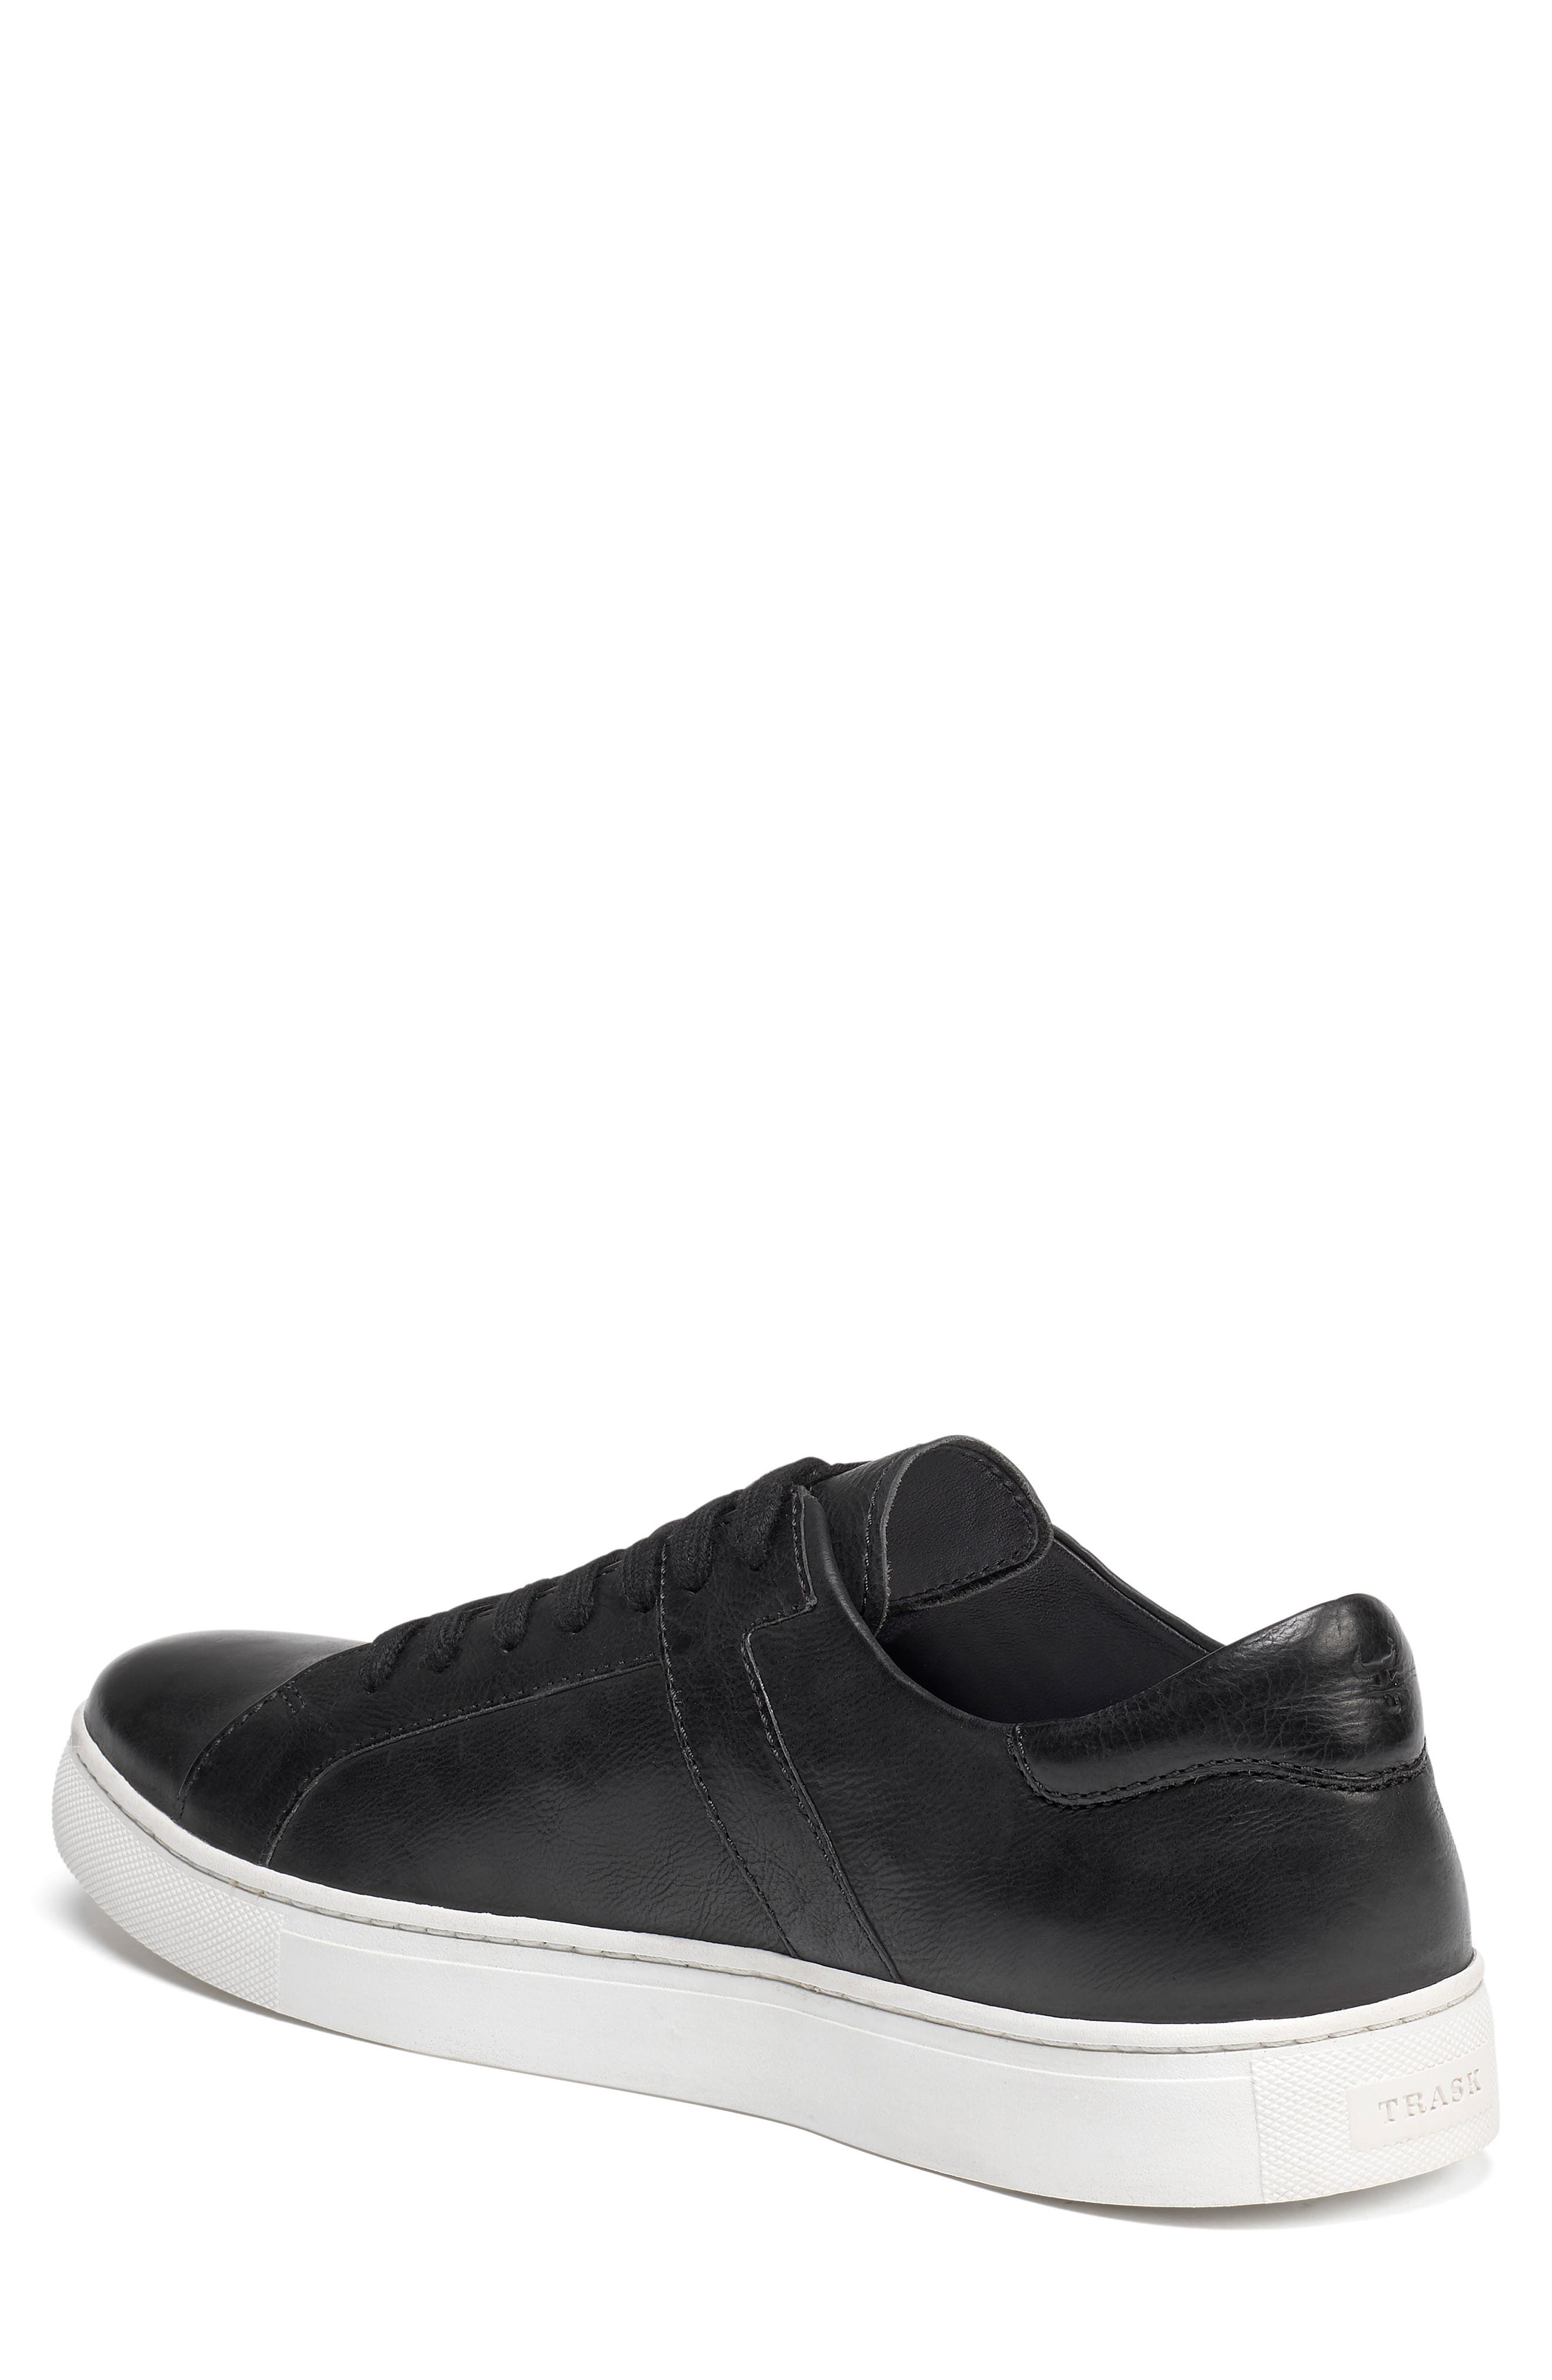 TRASK, Aaron Sneaker, Alternate thumbnail 2, color, BLACK LEATHER